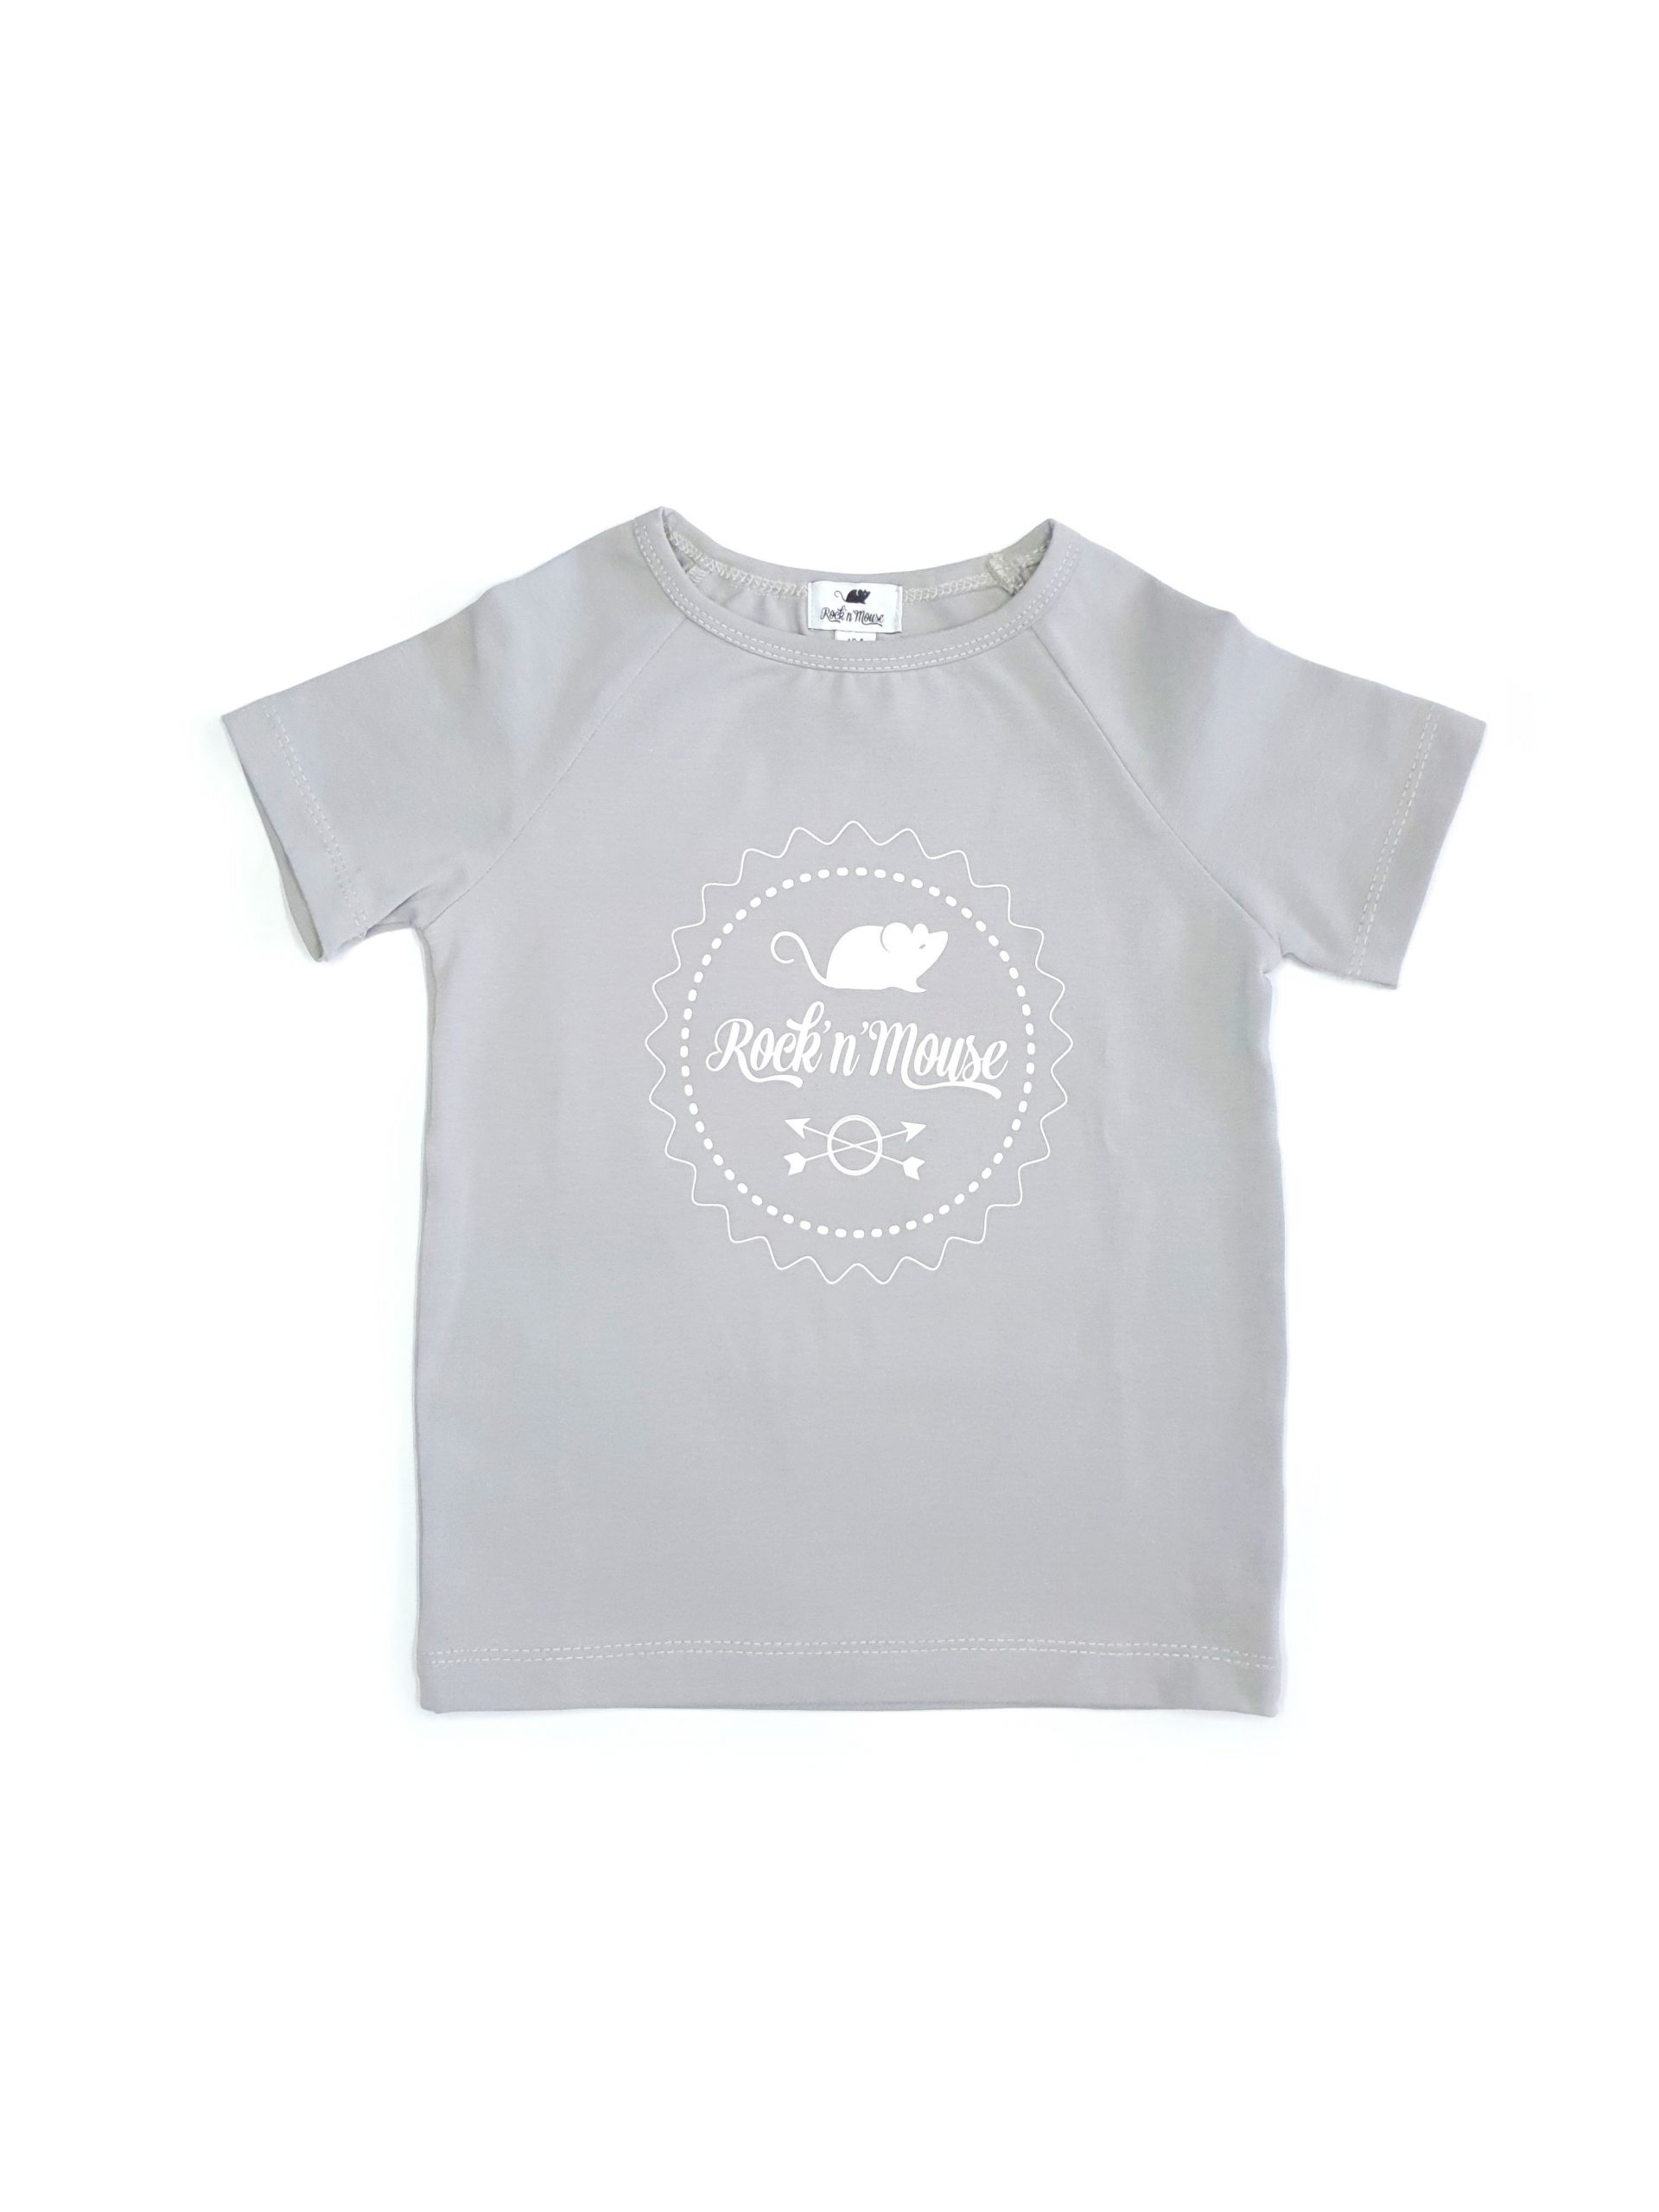 Unisex grey sleeve Rock And Mouse logo T-shirt for kids - toddler and baby boys and girls